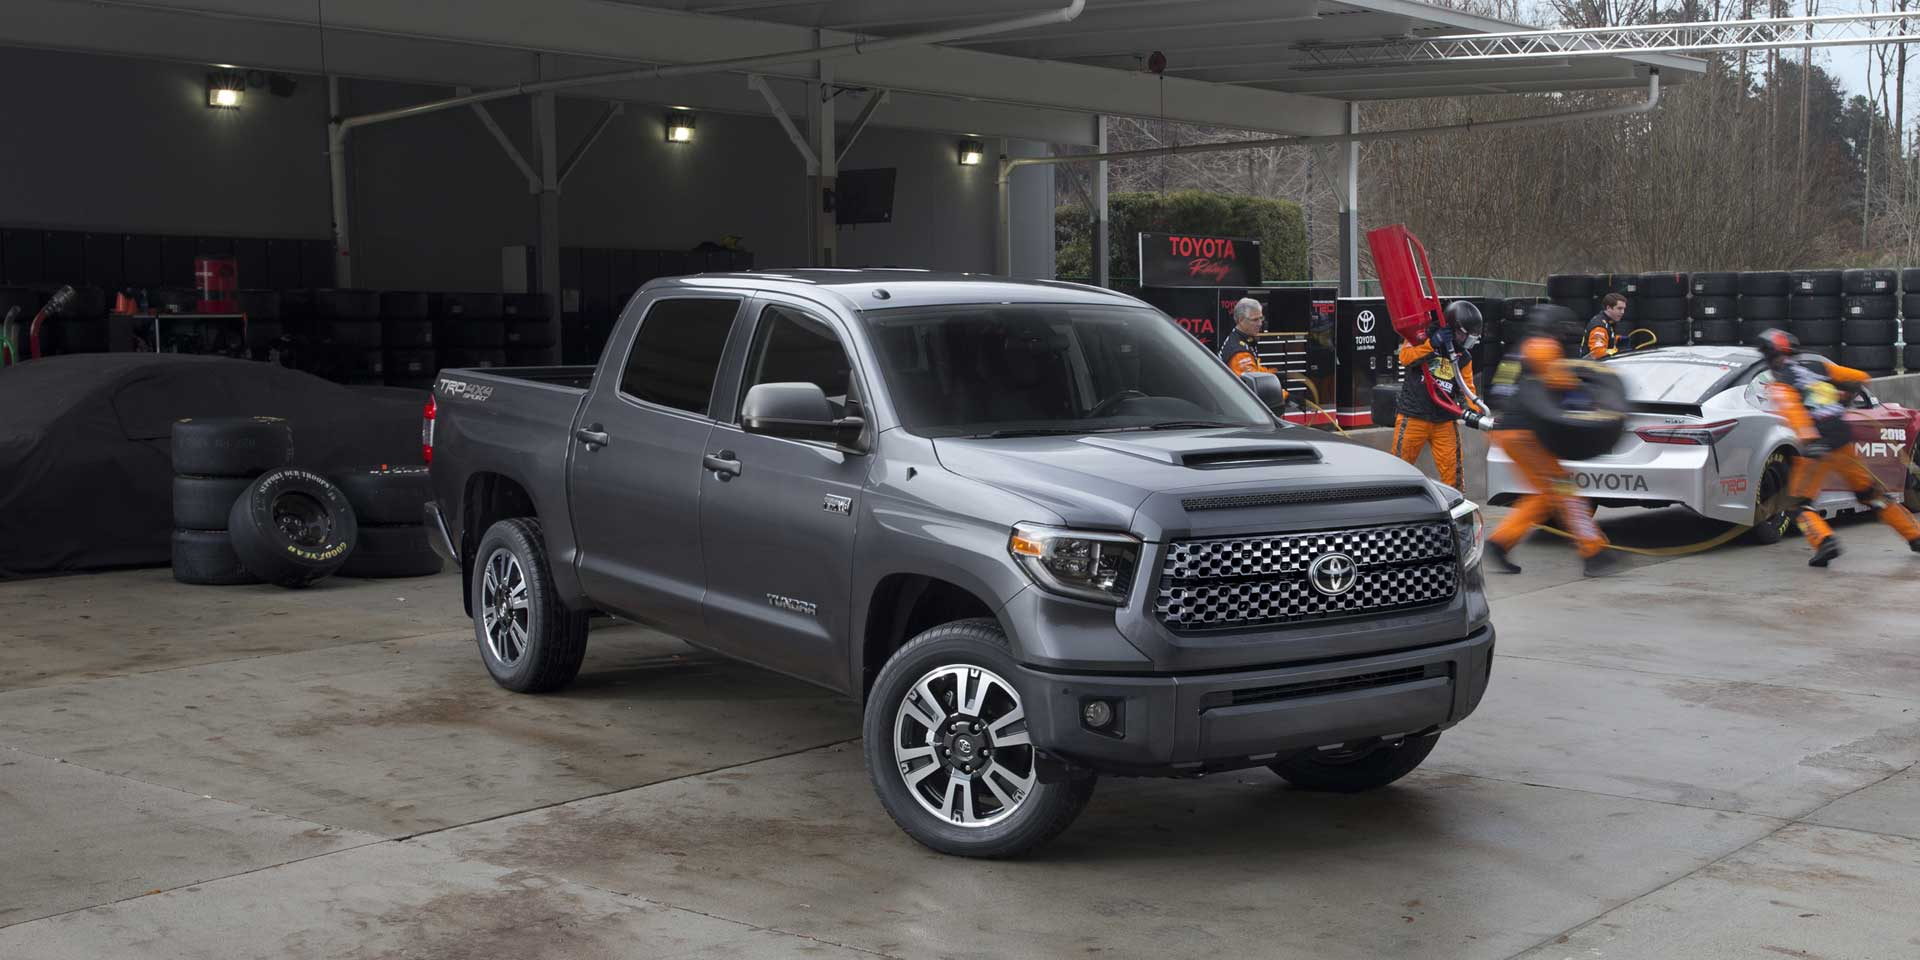 2018 - Toyota - Tundra TRD Sport - Vehicles on Display ...